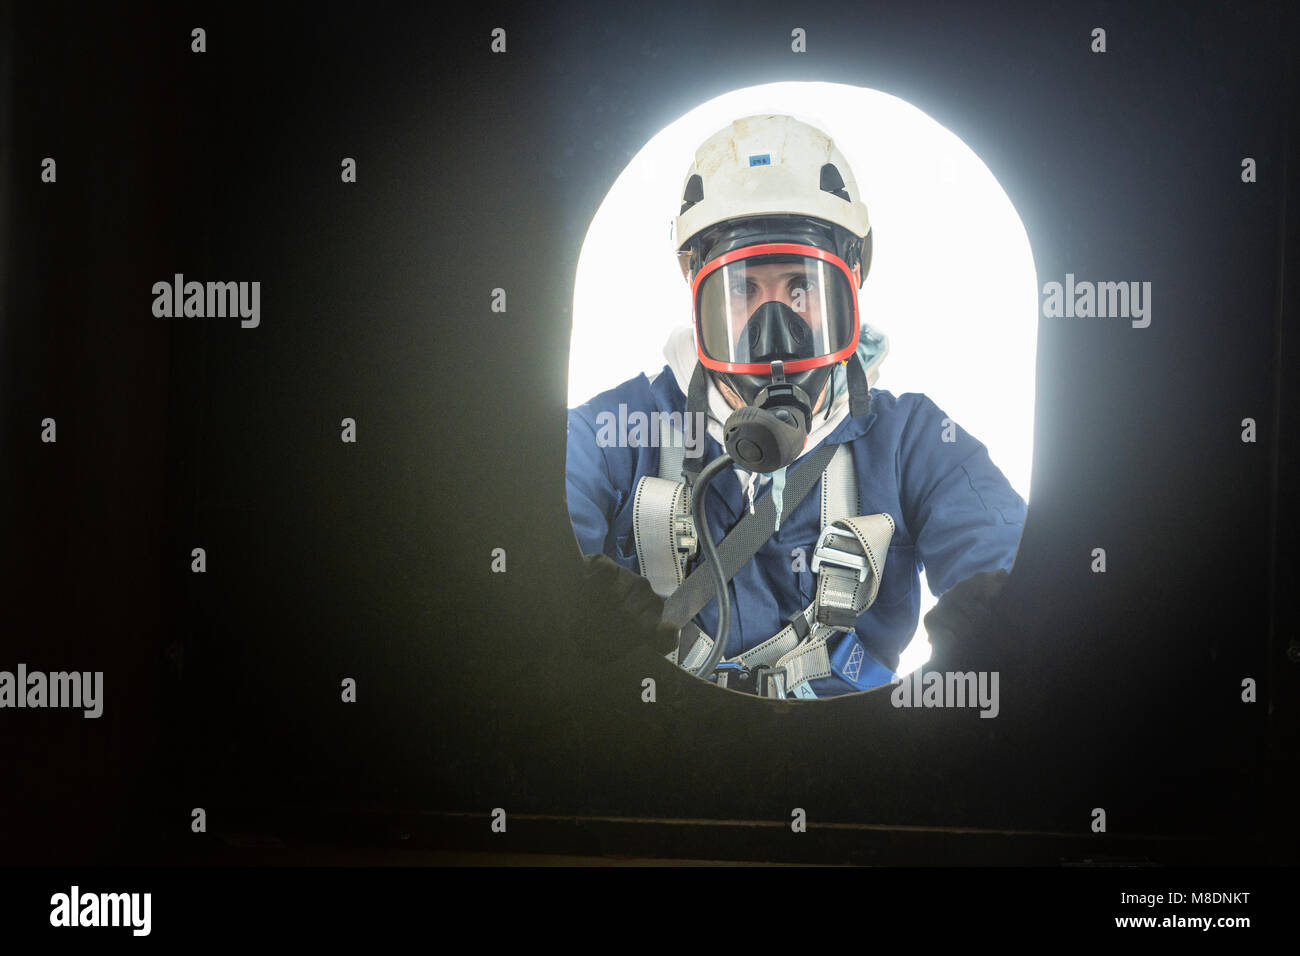 Apprentice engineer in enclosed space fire training - Stock Image